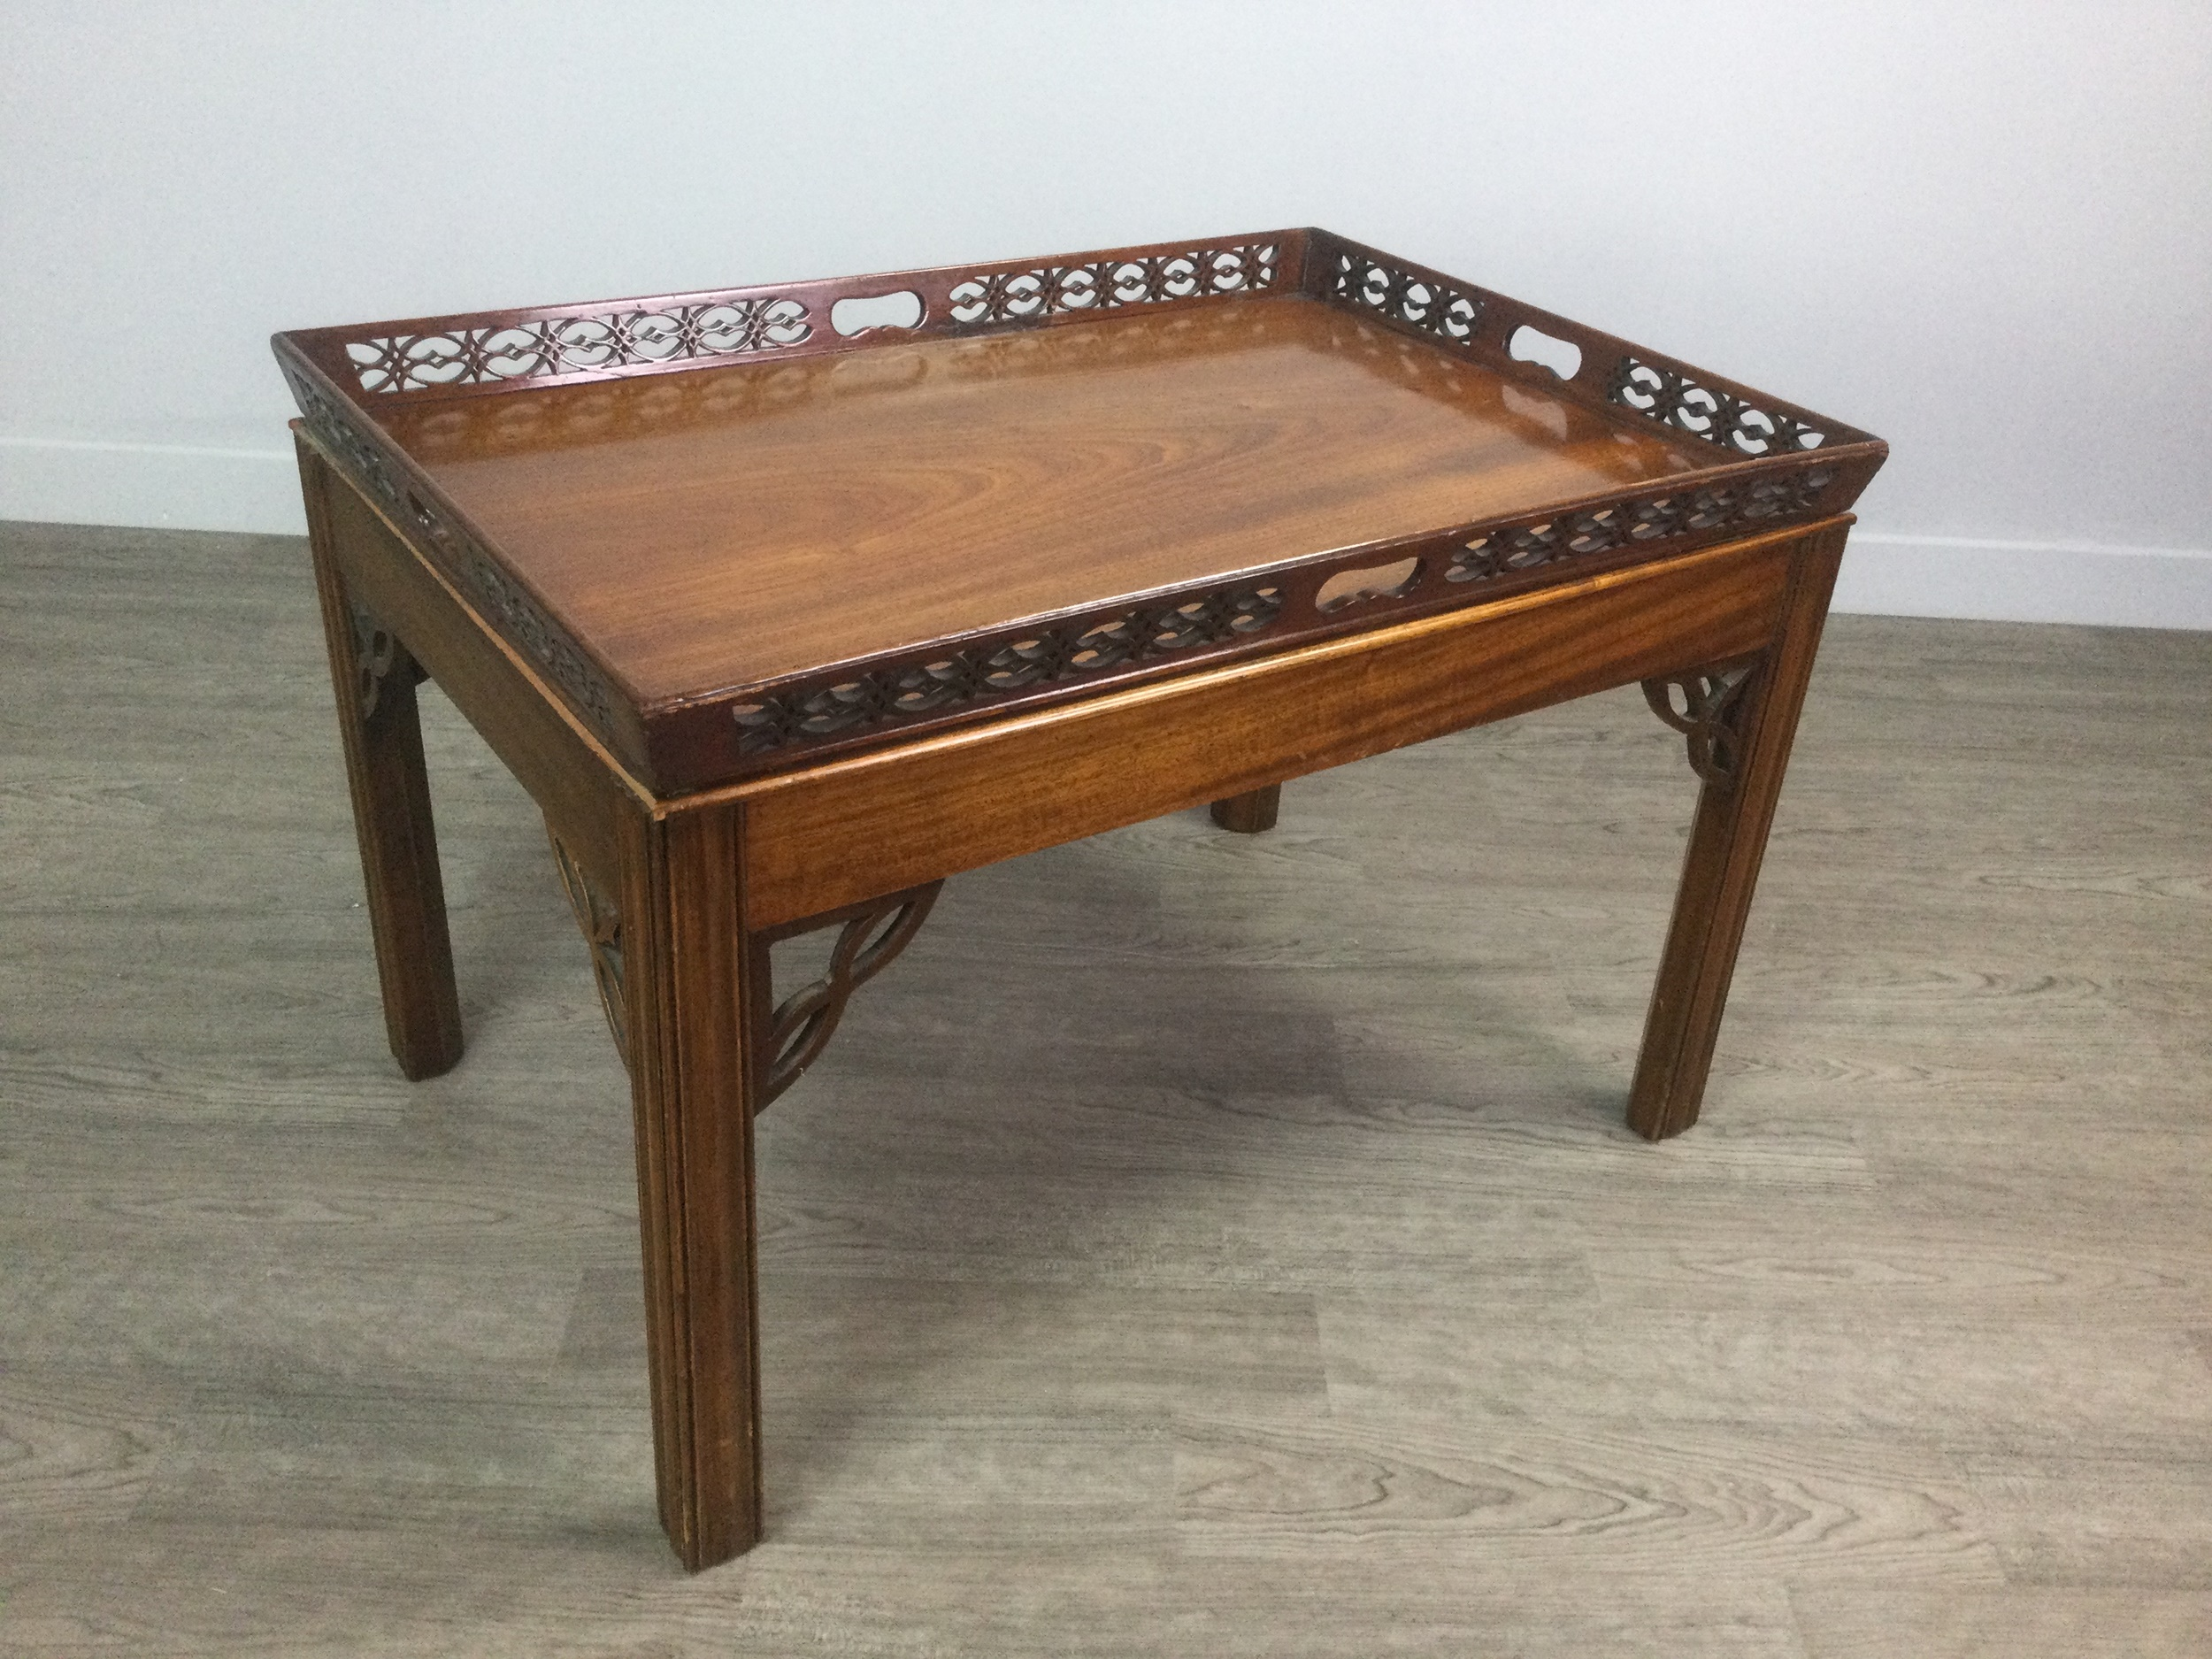 A MAHOGANY TRAY TOP OCCASIONAL TABLE OF CHIPPENDALE DESIGN